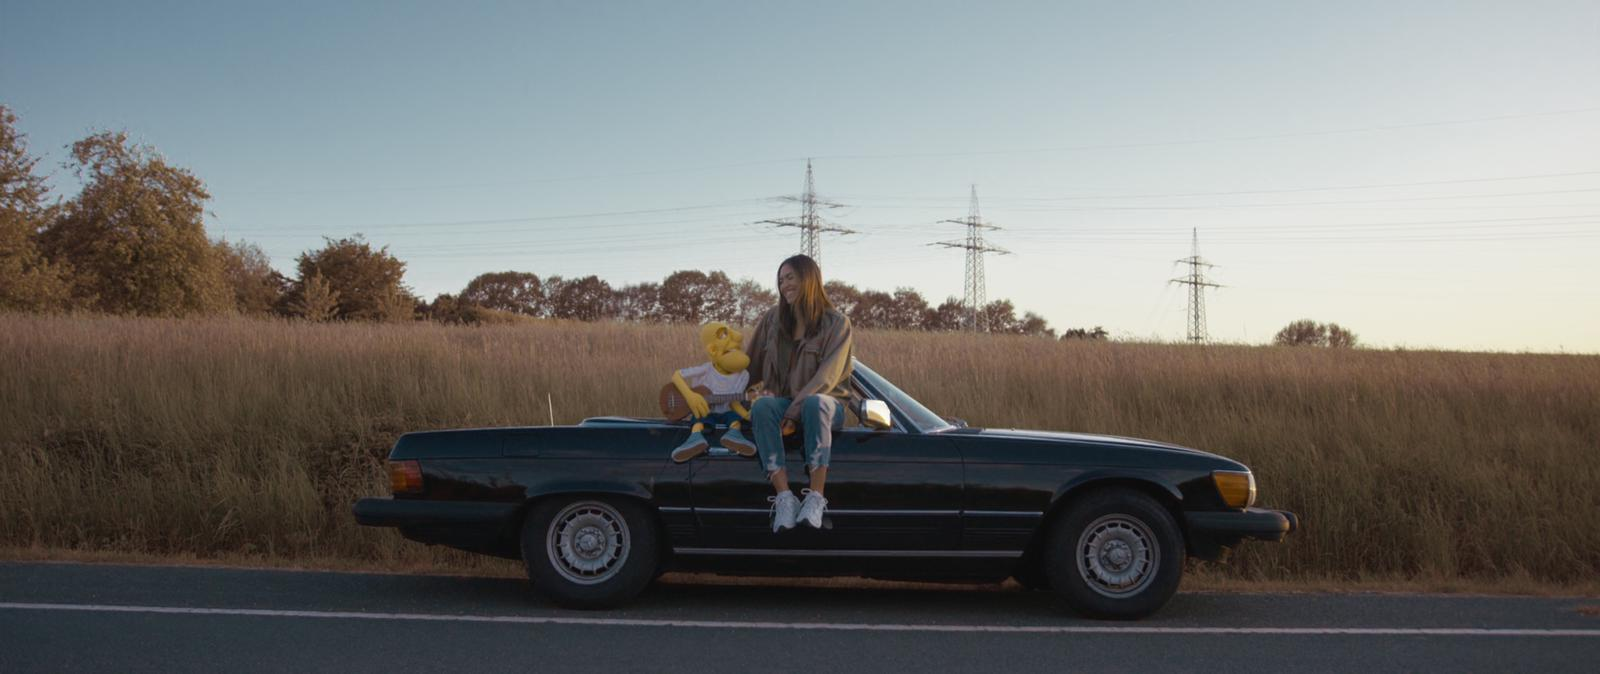 Milow is puppet in music video for